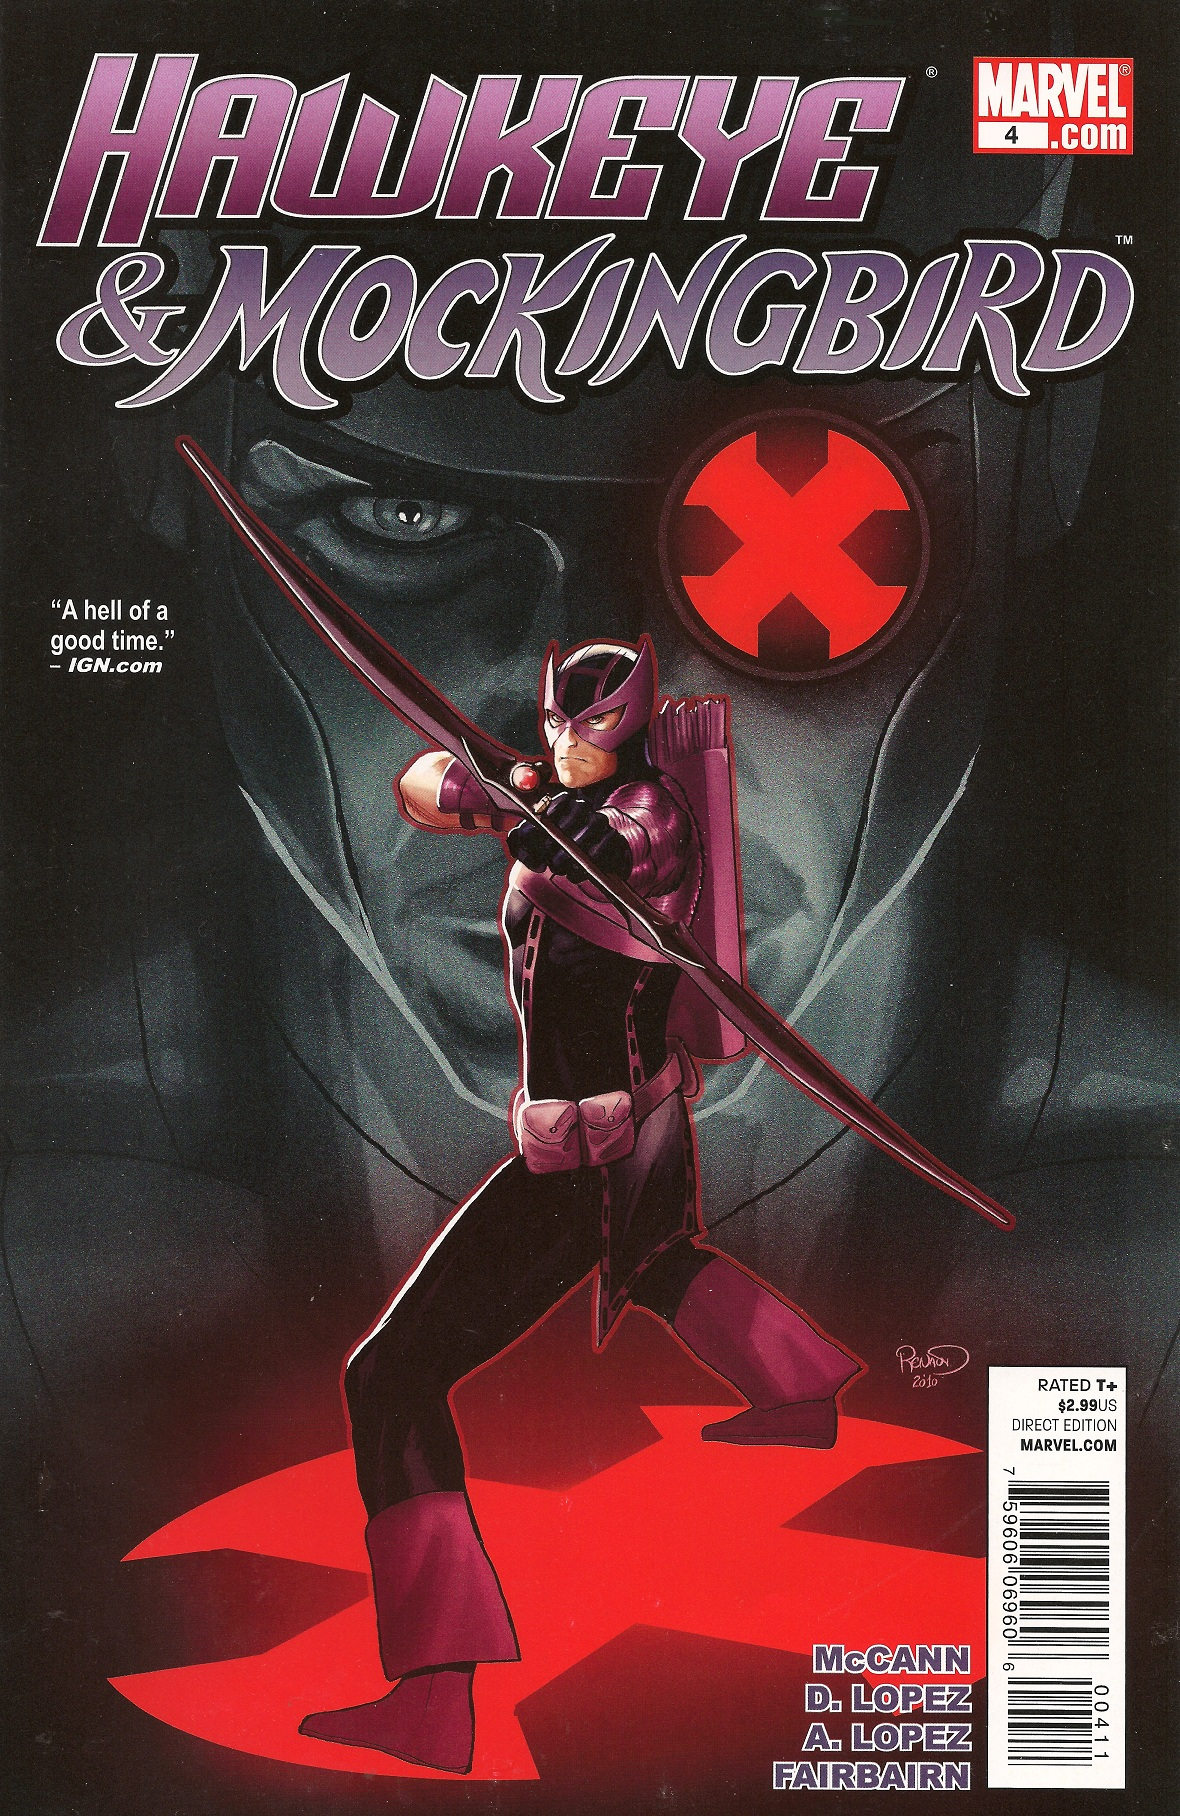 Hawkeye & Mockingbird Vol 1 4